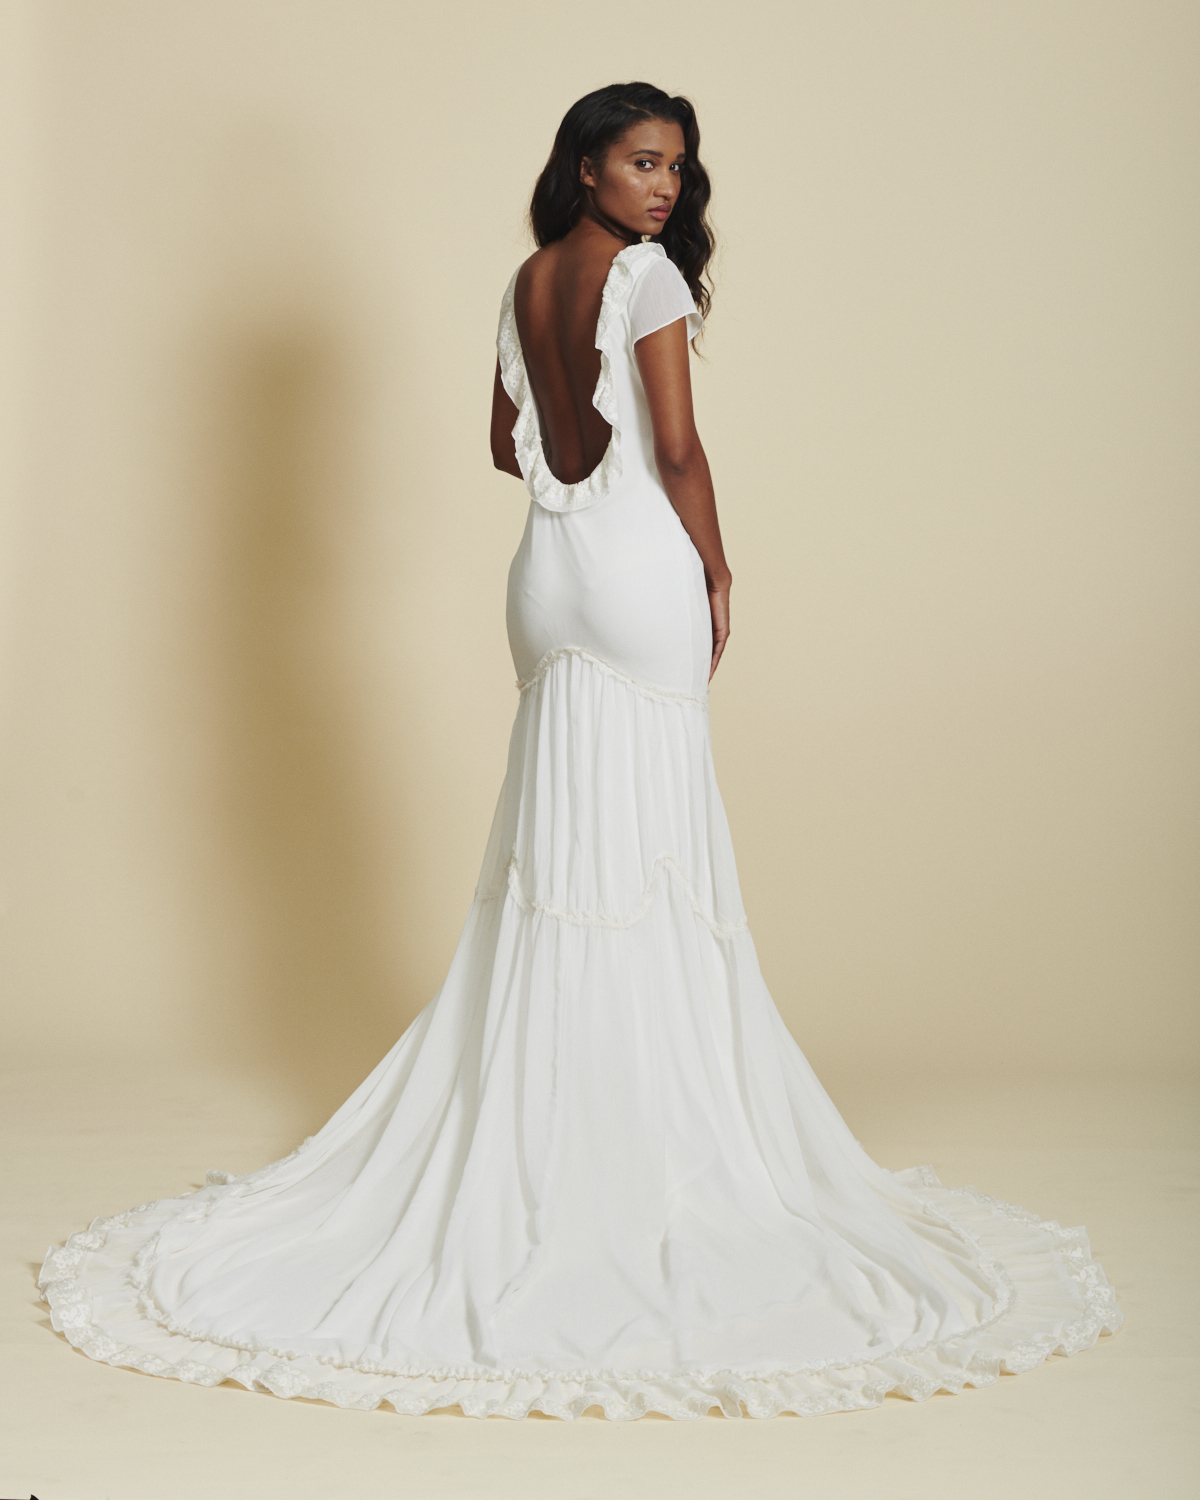 ruffle chiffon wedding dress by Daughters of Simone